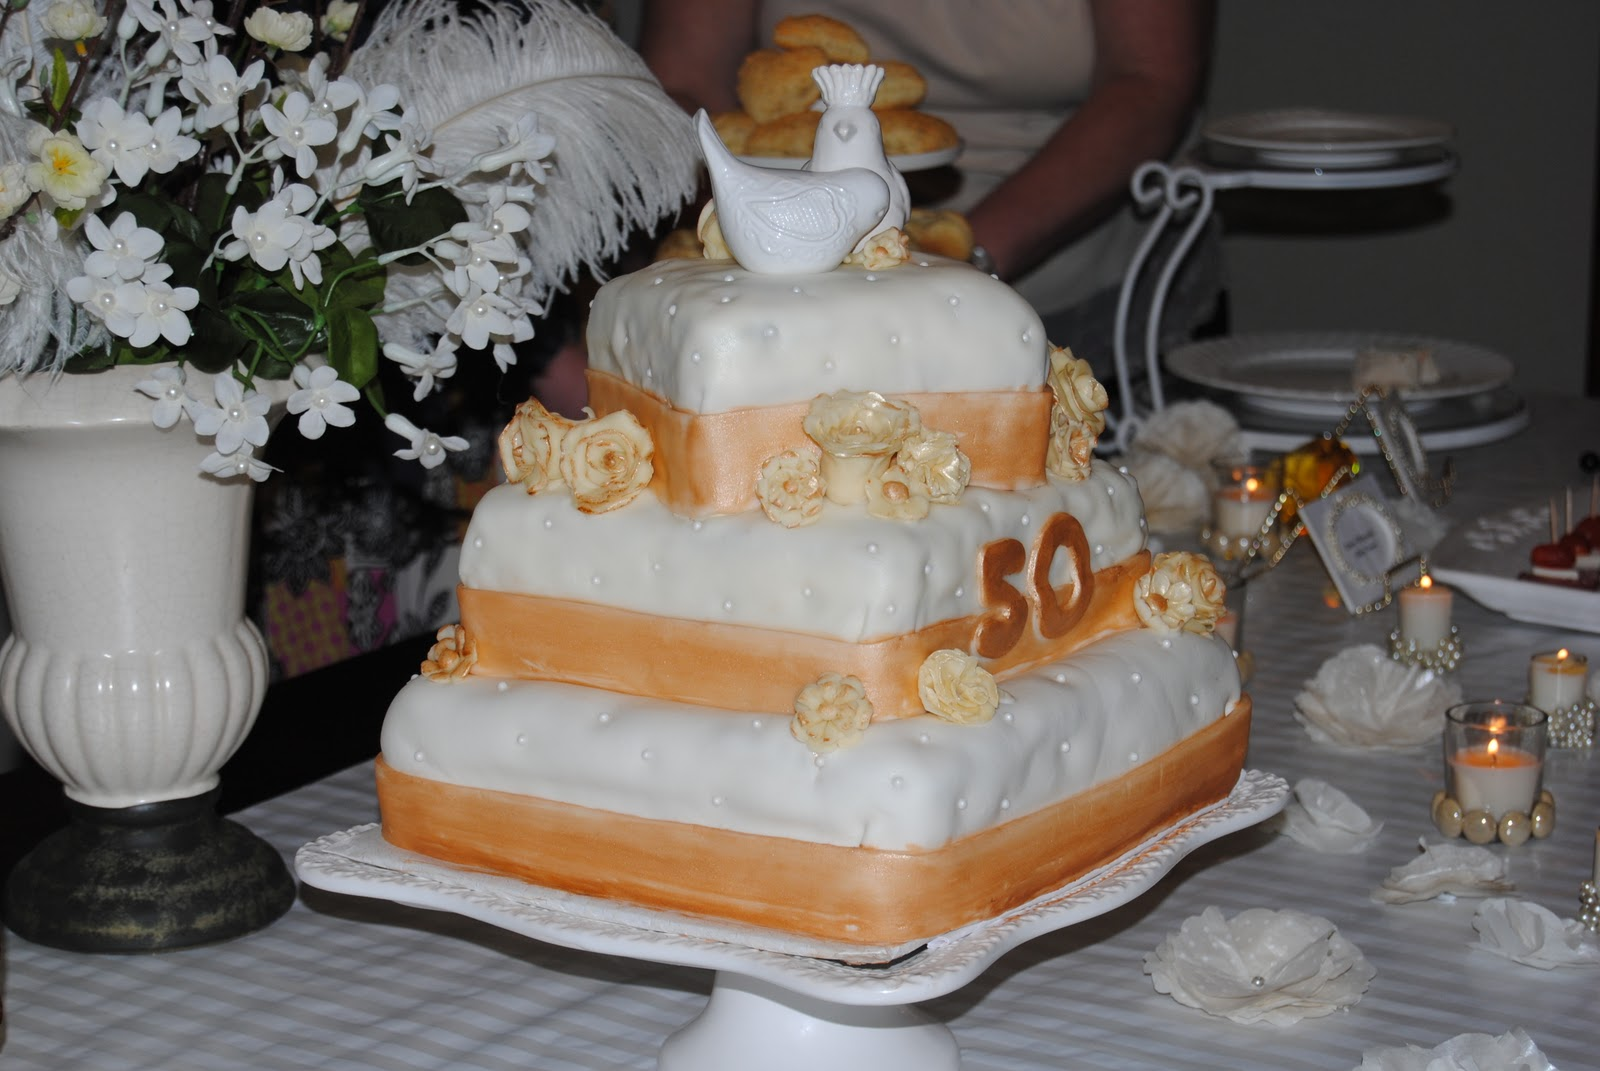 Cupcakes For Breakfast?: The Sugar Free Wedding Cake- 50th Anniversary